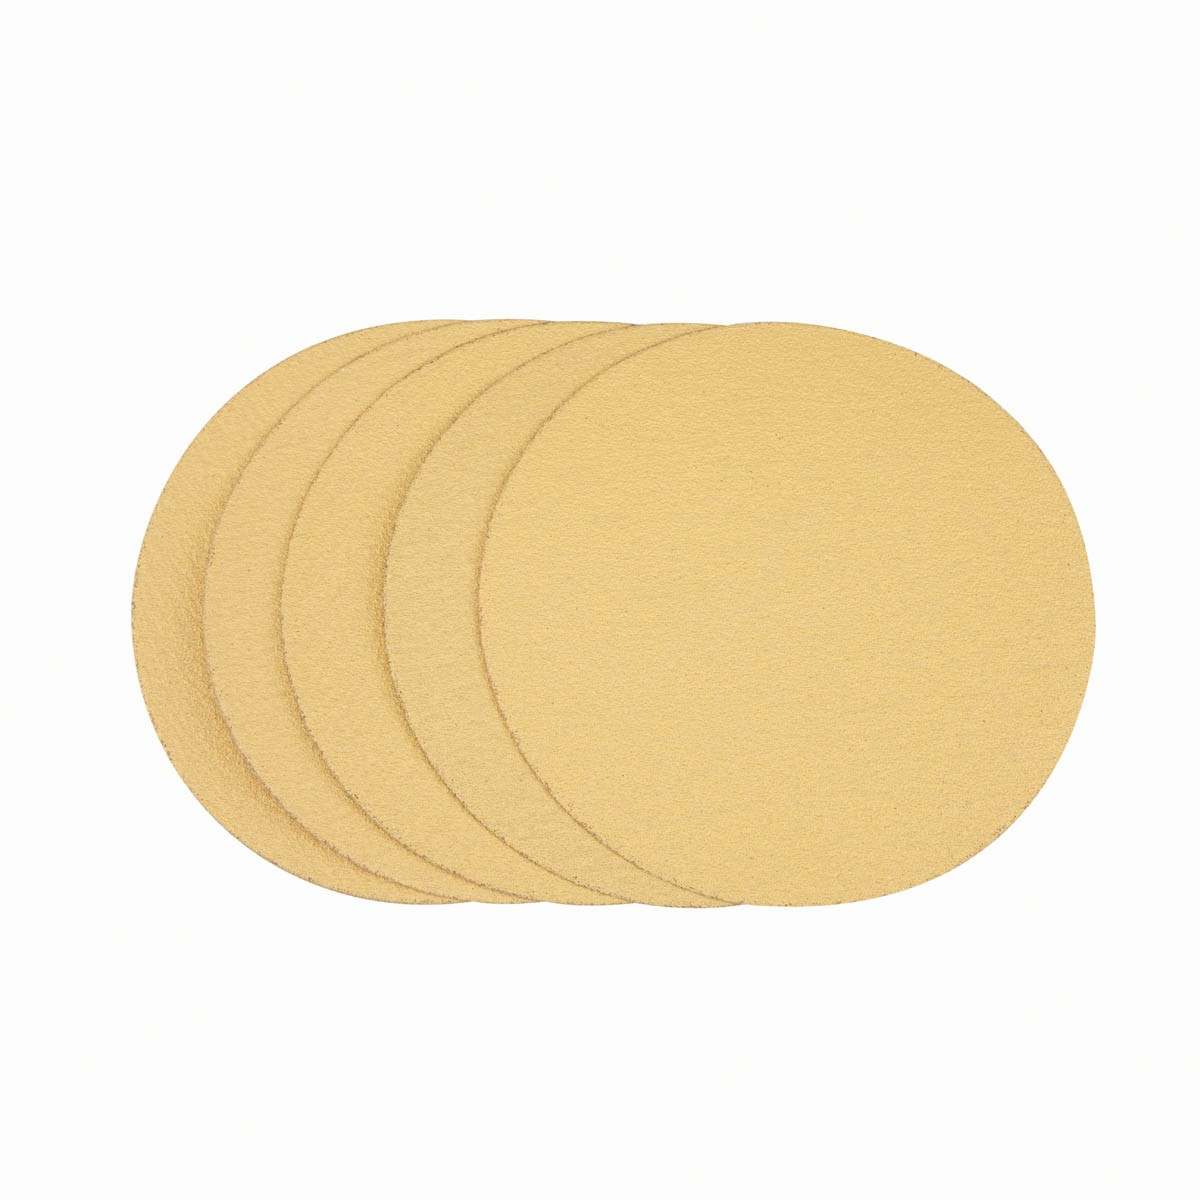 6 in. 80 Grit PSA Sanding Discs 5 Pc